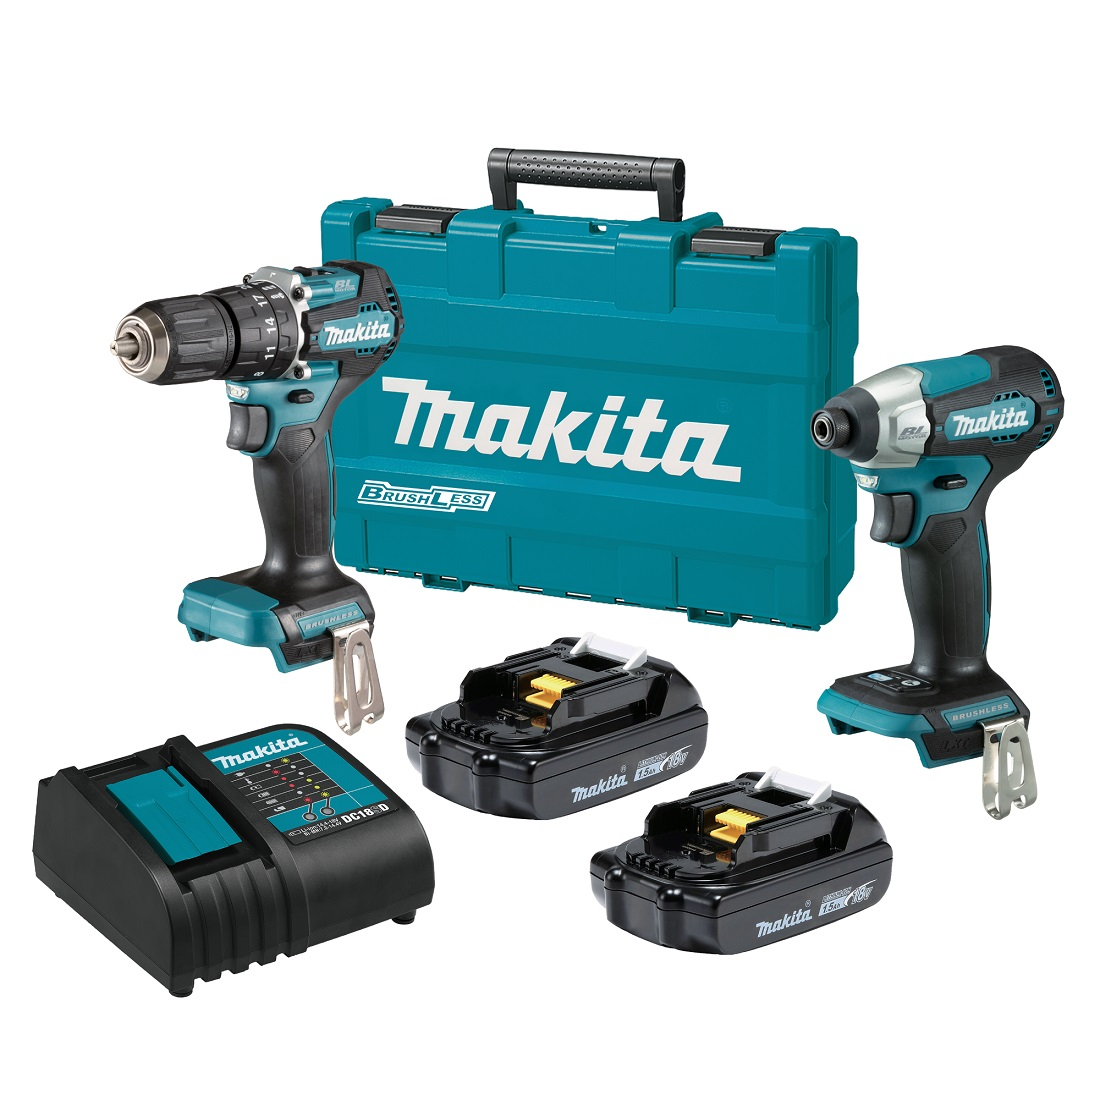 Makita 18V LXT Sub-Compact Brushless Hammer Drill Driver/Impact Driver 2 Piece Kit DLX2414SY